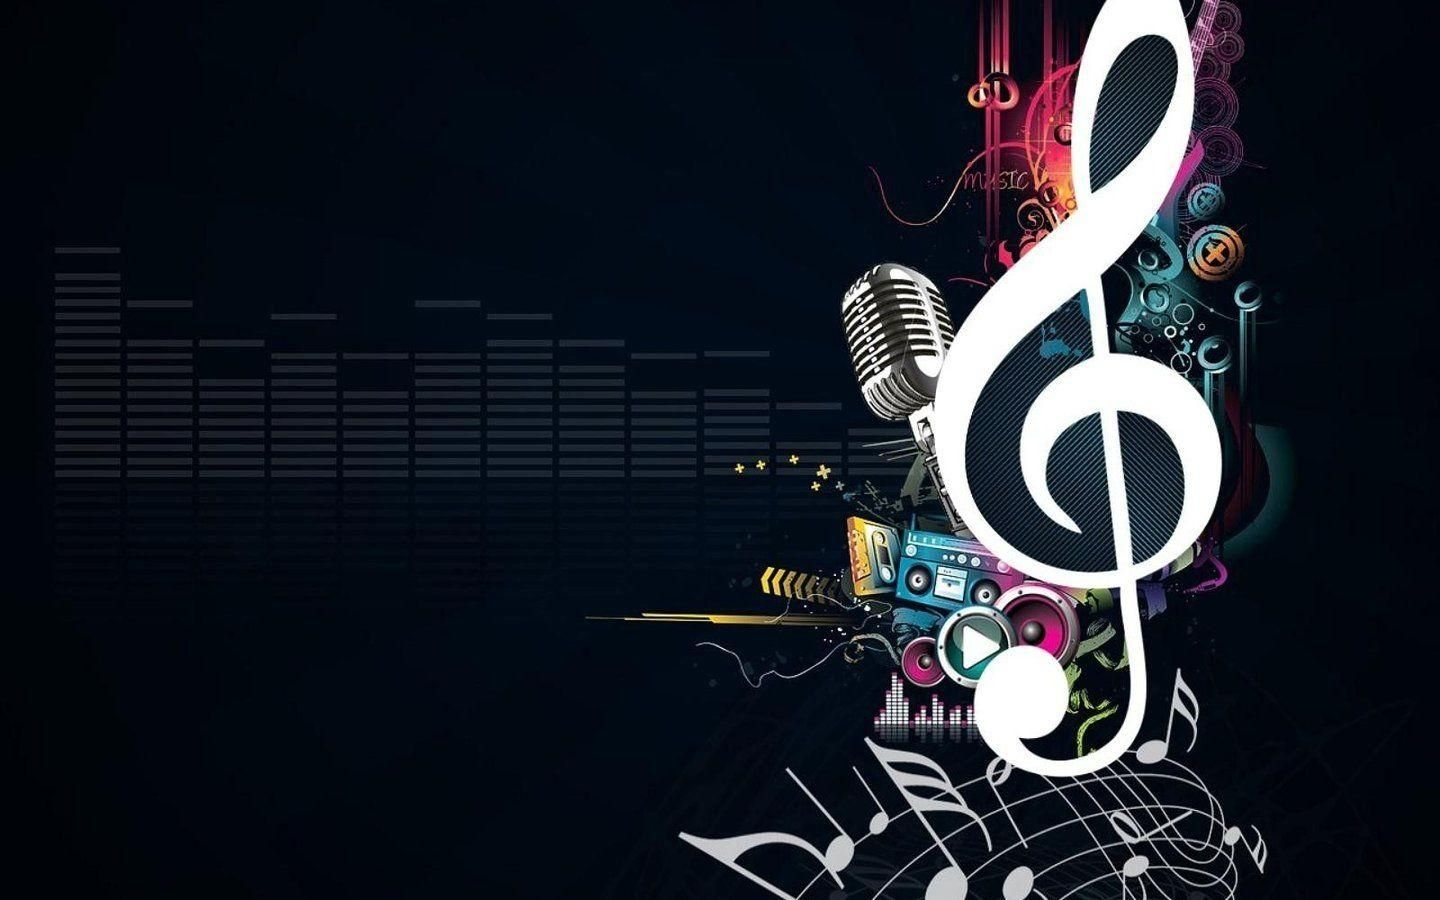 10 Most Popular Abstract Music Hd Wallpapers Full Hd 1920 1080 For Pc Background Music Notes Background Music Wallpaper Iphone Wallpaper Music